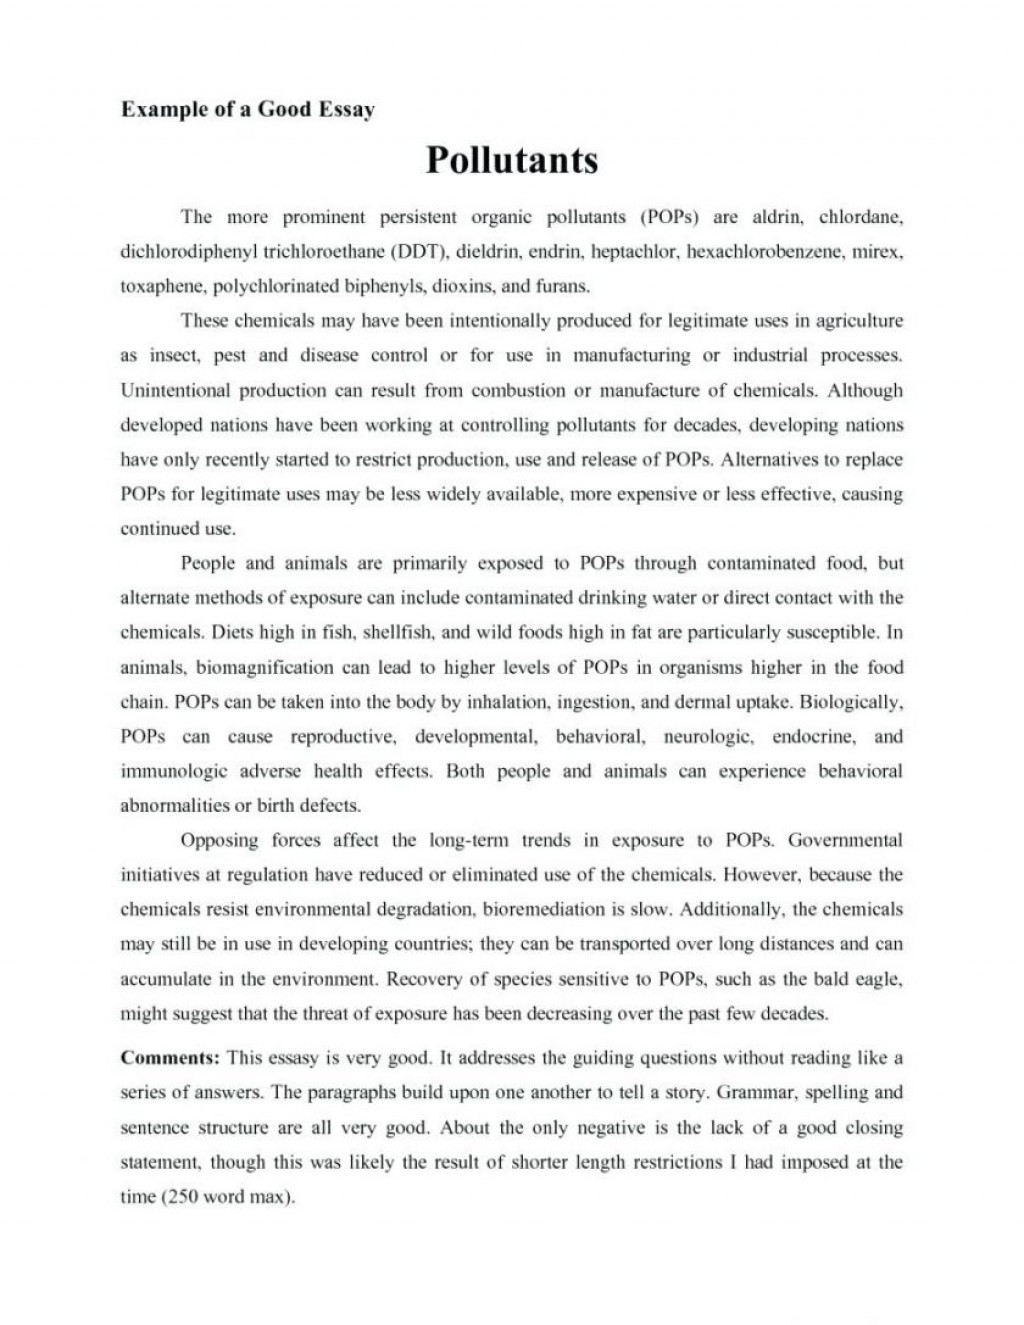 012 Research Paper Business Topics For Papers Examples Of Good Essay How To Write College Easy About Questio Descriptive Informative Synthesissuasive Narrative Marvelous Workplace Diversity Communication Large